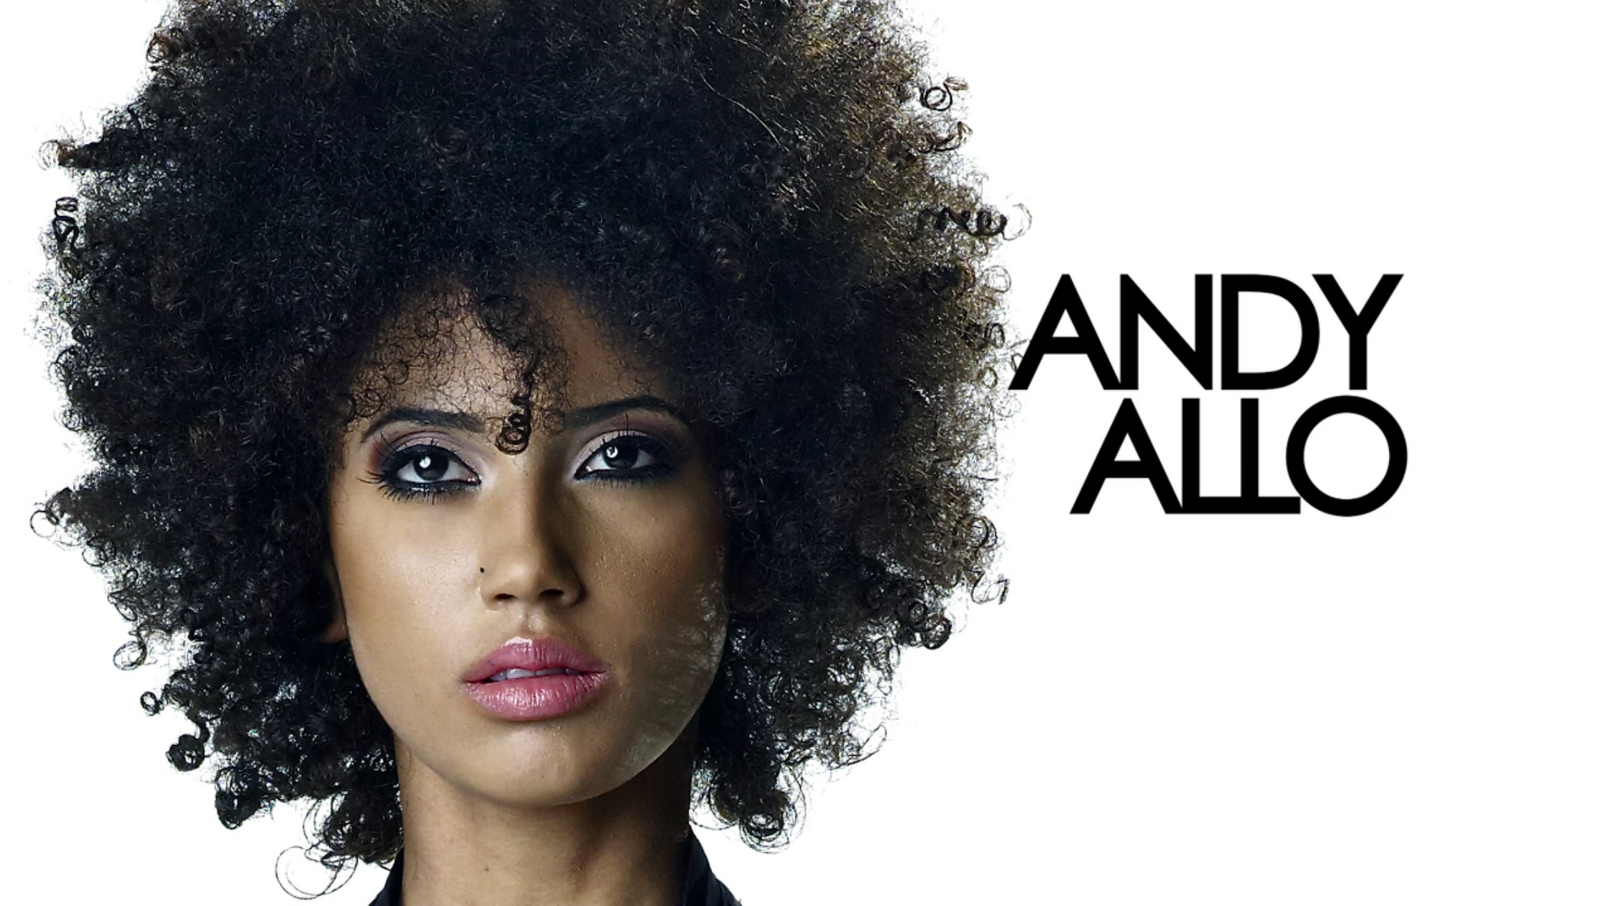 """Andy Allo """"Ebony"""" Interview Andy Allo: Prince's Protégé Comes Into Her Own"""